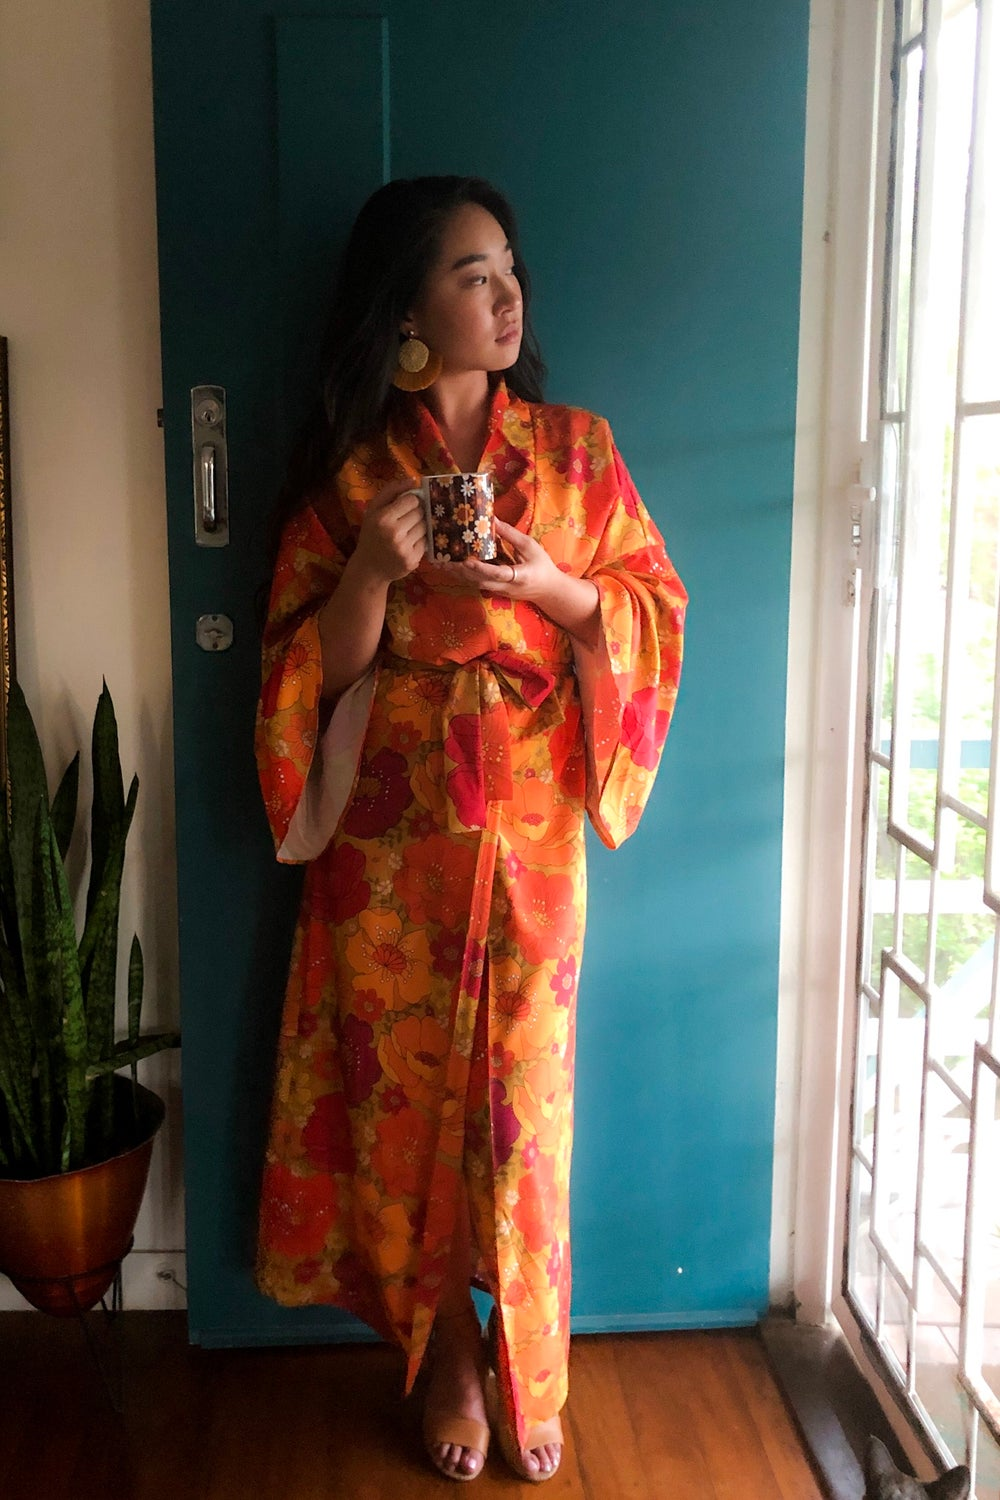 Feelin' groovy long length robe in Just lovely red